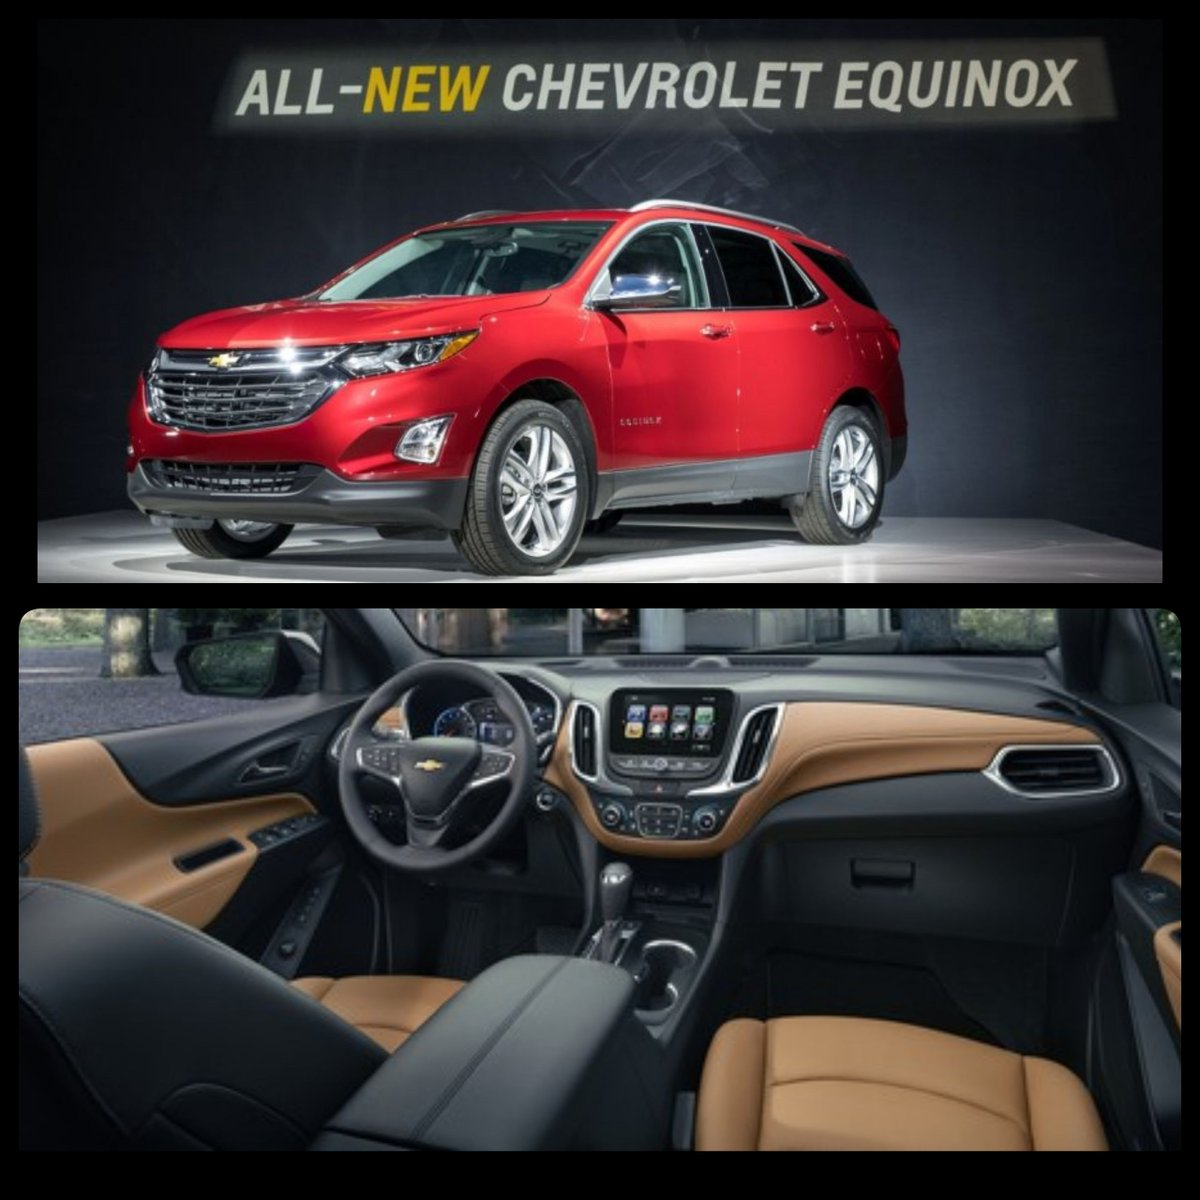 2018 #redesigned #Chevrolet #Equinox lost 400 #pounds 10% of #weight3 engines #options  new 1.6L #diesel 1.5L turbo &amp; 2.0L #turbo #diet #GM<br>http://pic.twitter.com/bQZC6Ofp2S